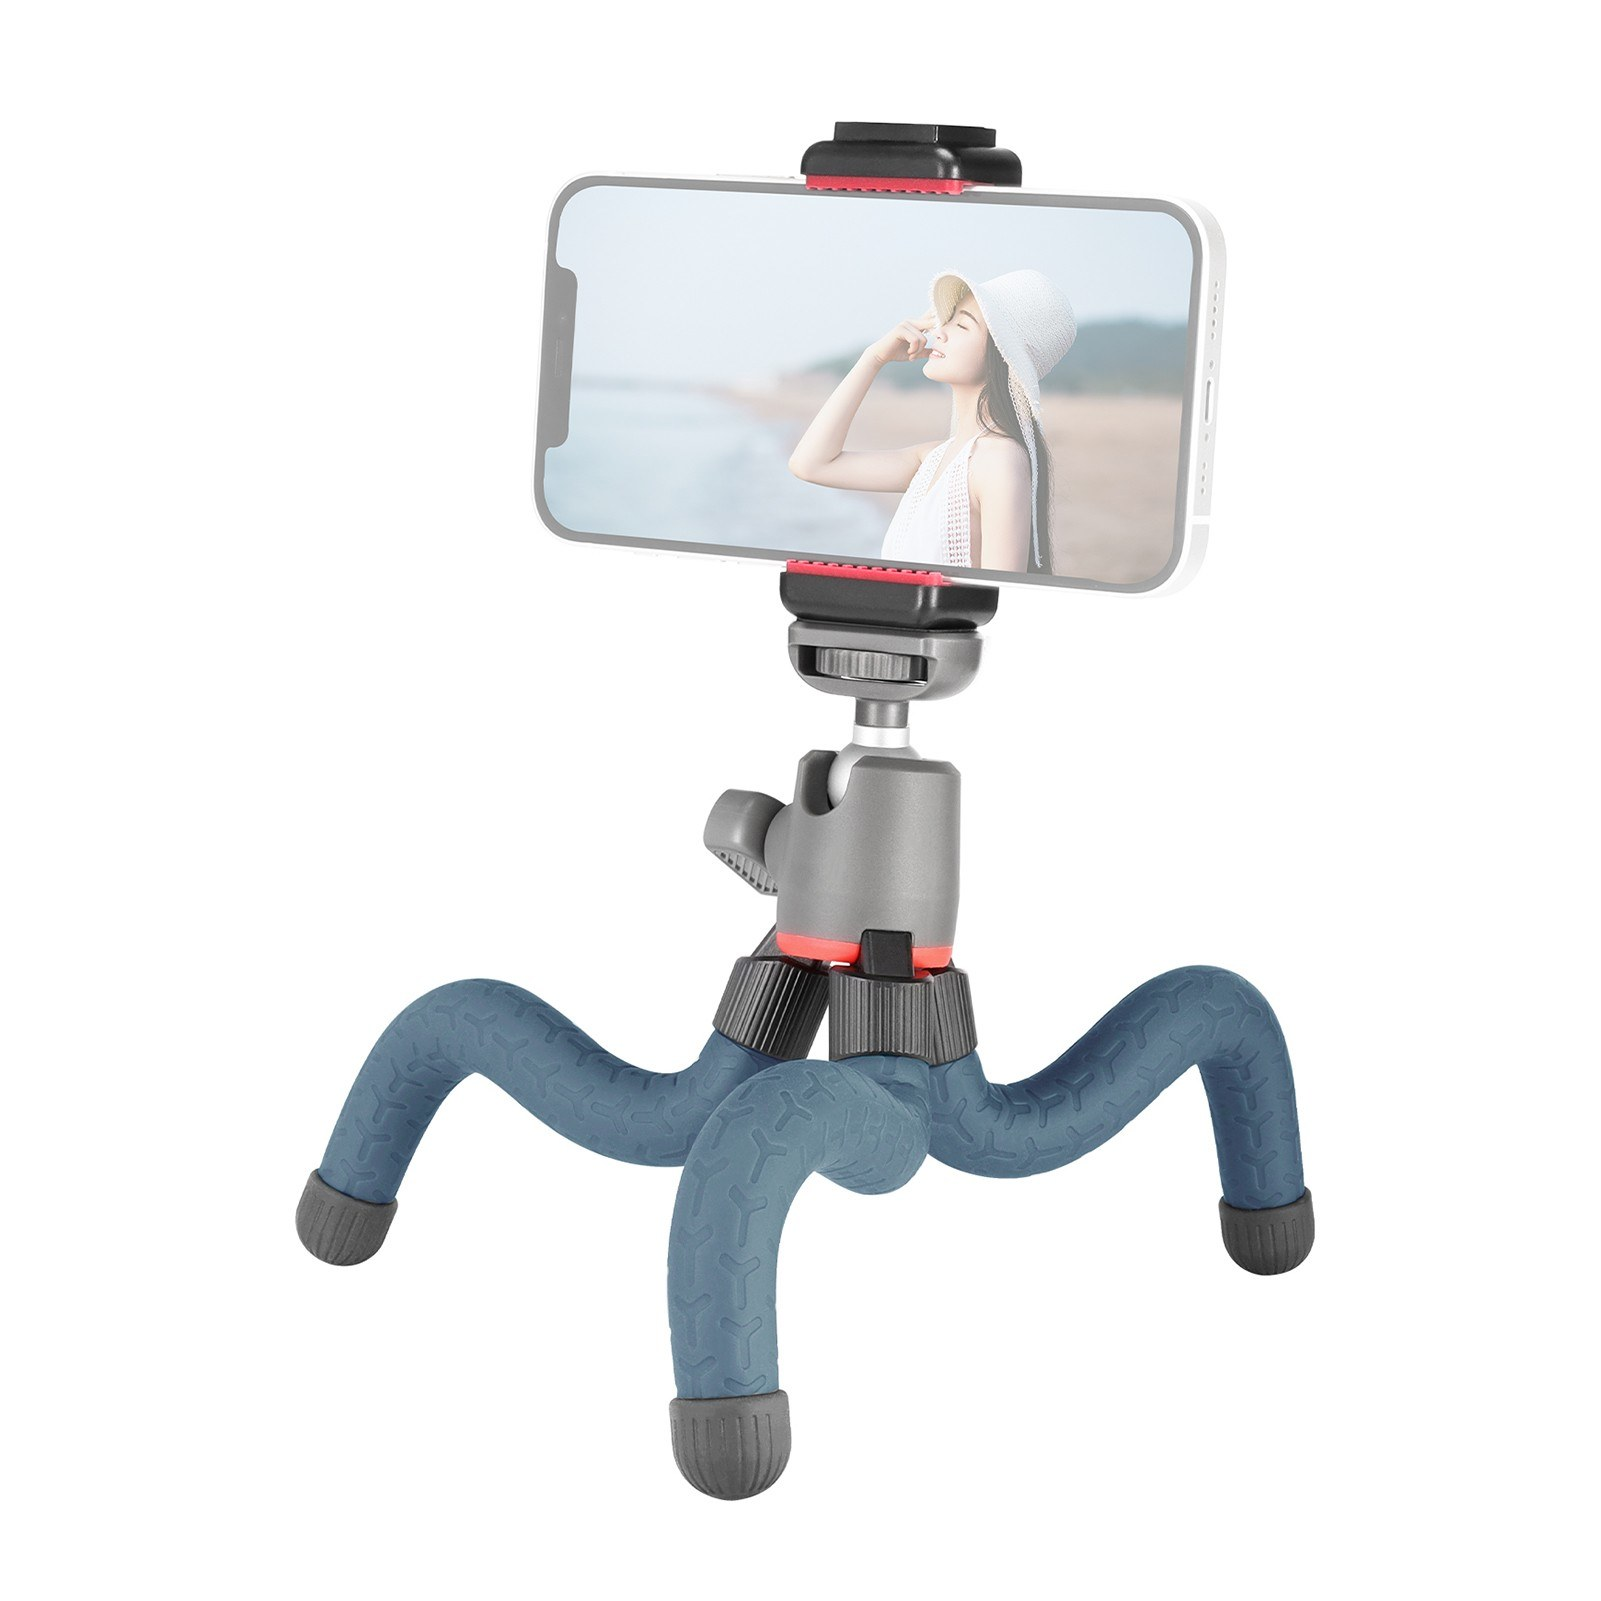 Tomtop - 48% OFF Ulanzi Phone Octopus Tripod Flexible Adjustable 1.5KG Payload, Free Shipping $19.99